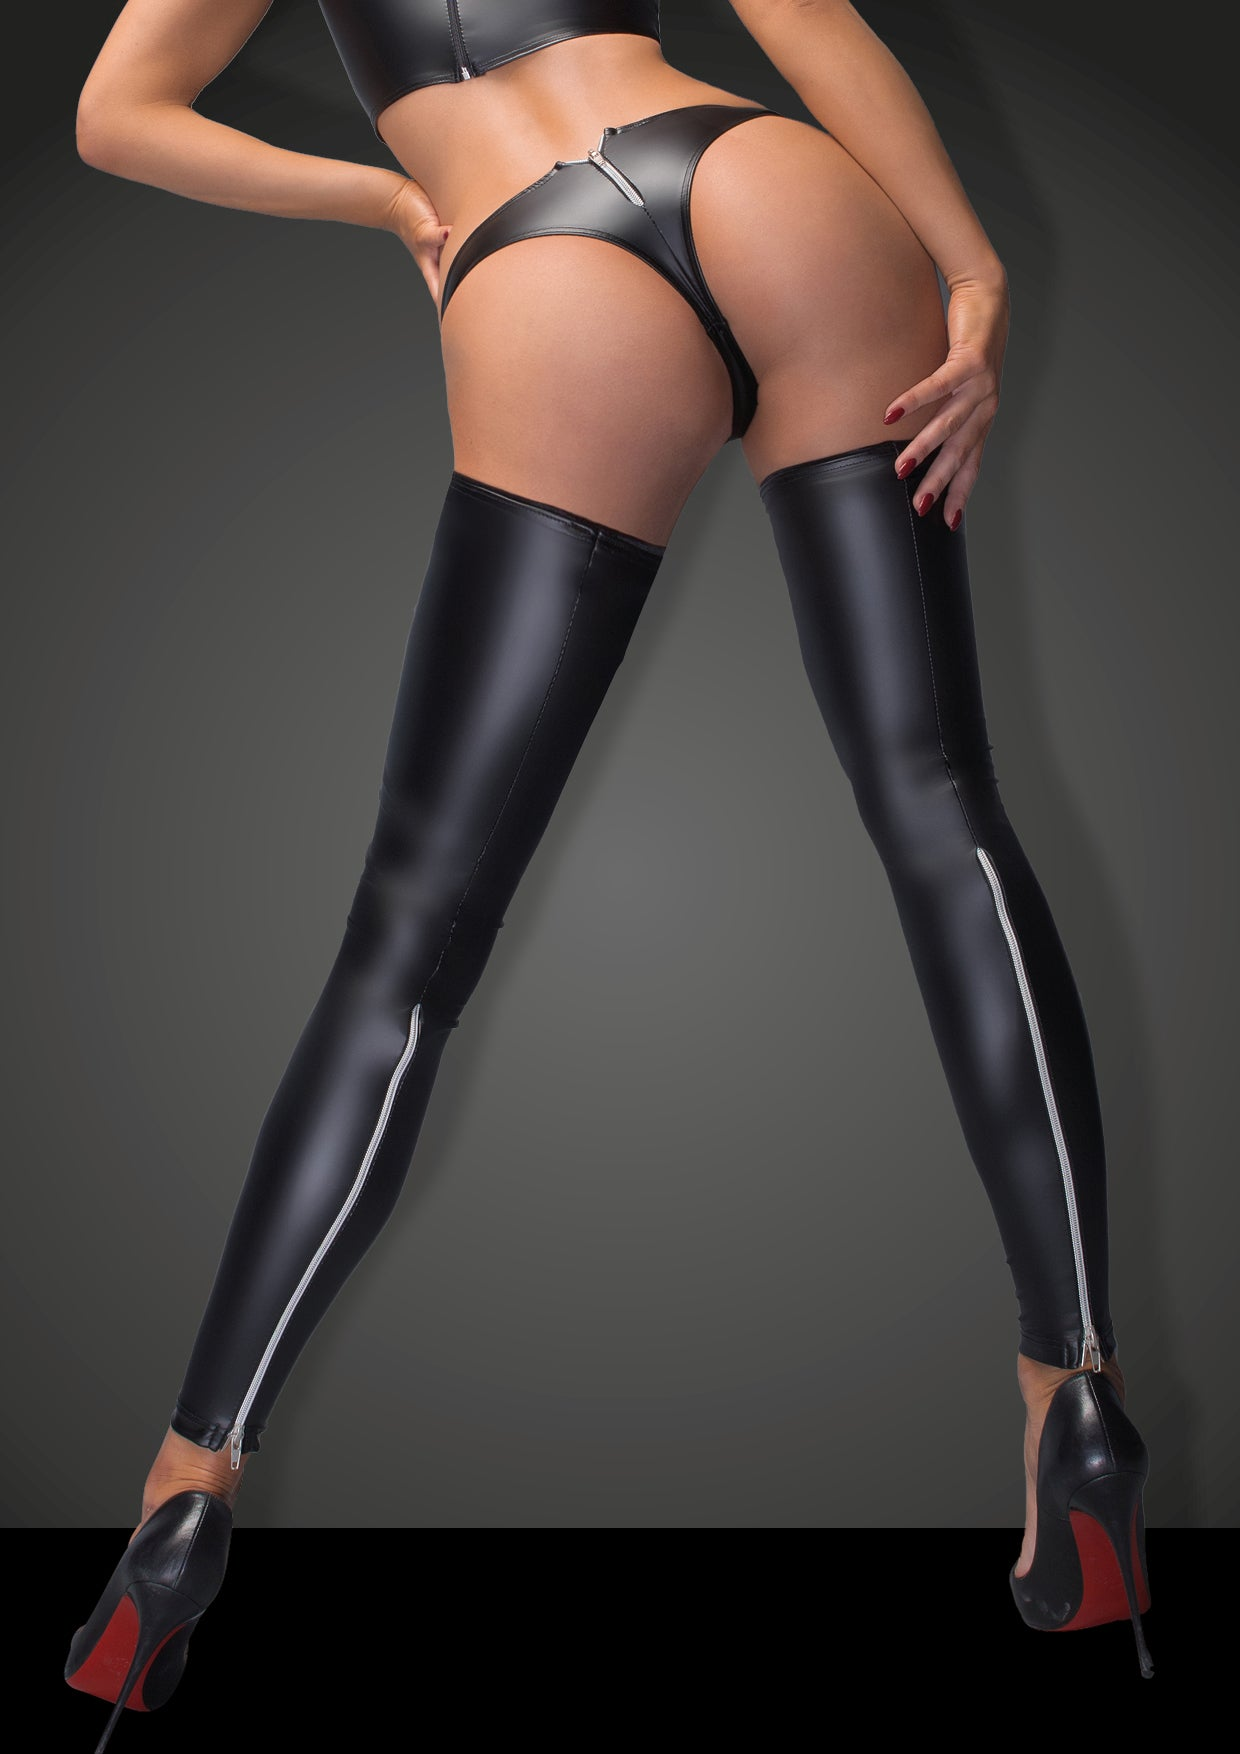 Sexy wetlook stockings with silver zip